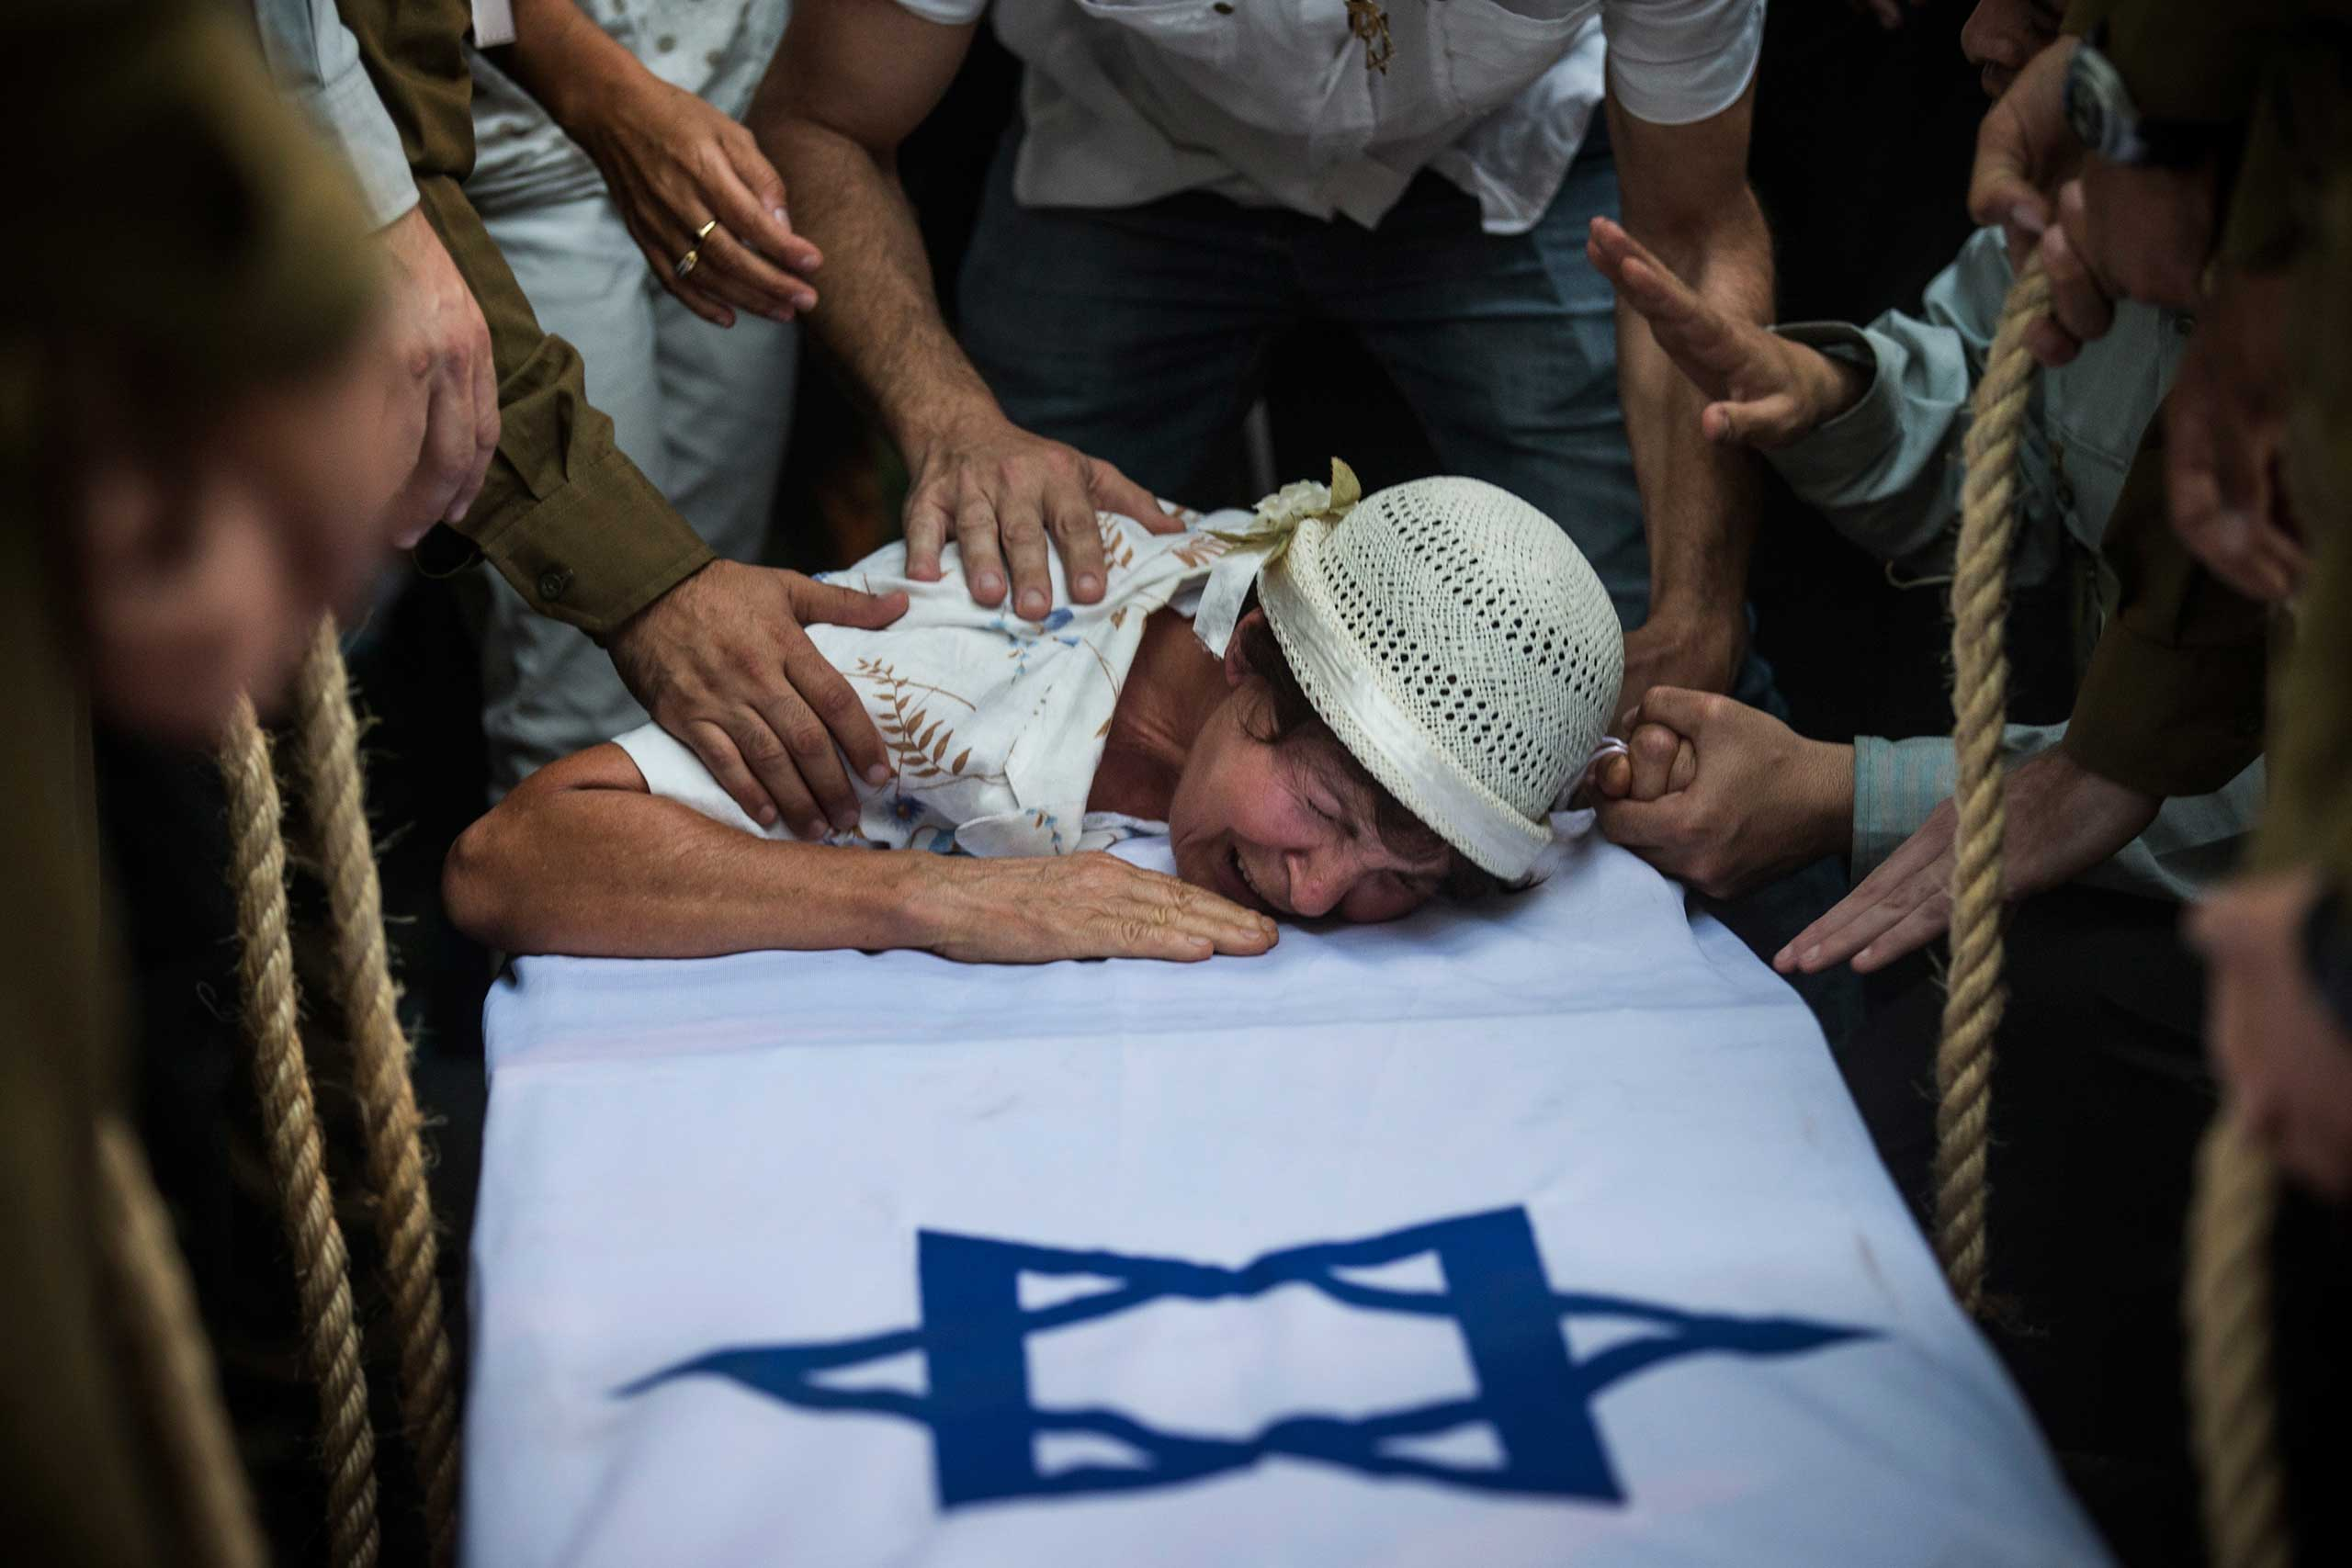 The grandmother of Private First Class Jordan Bensimon, cries over his casket during his funeral in Ashkelon, Israel, July 22, 2014.